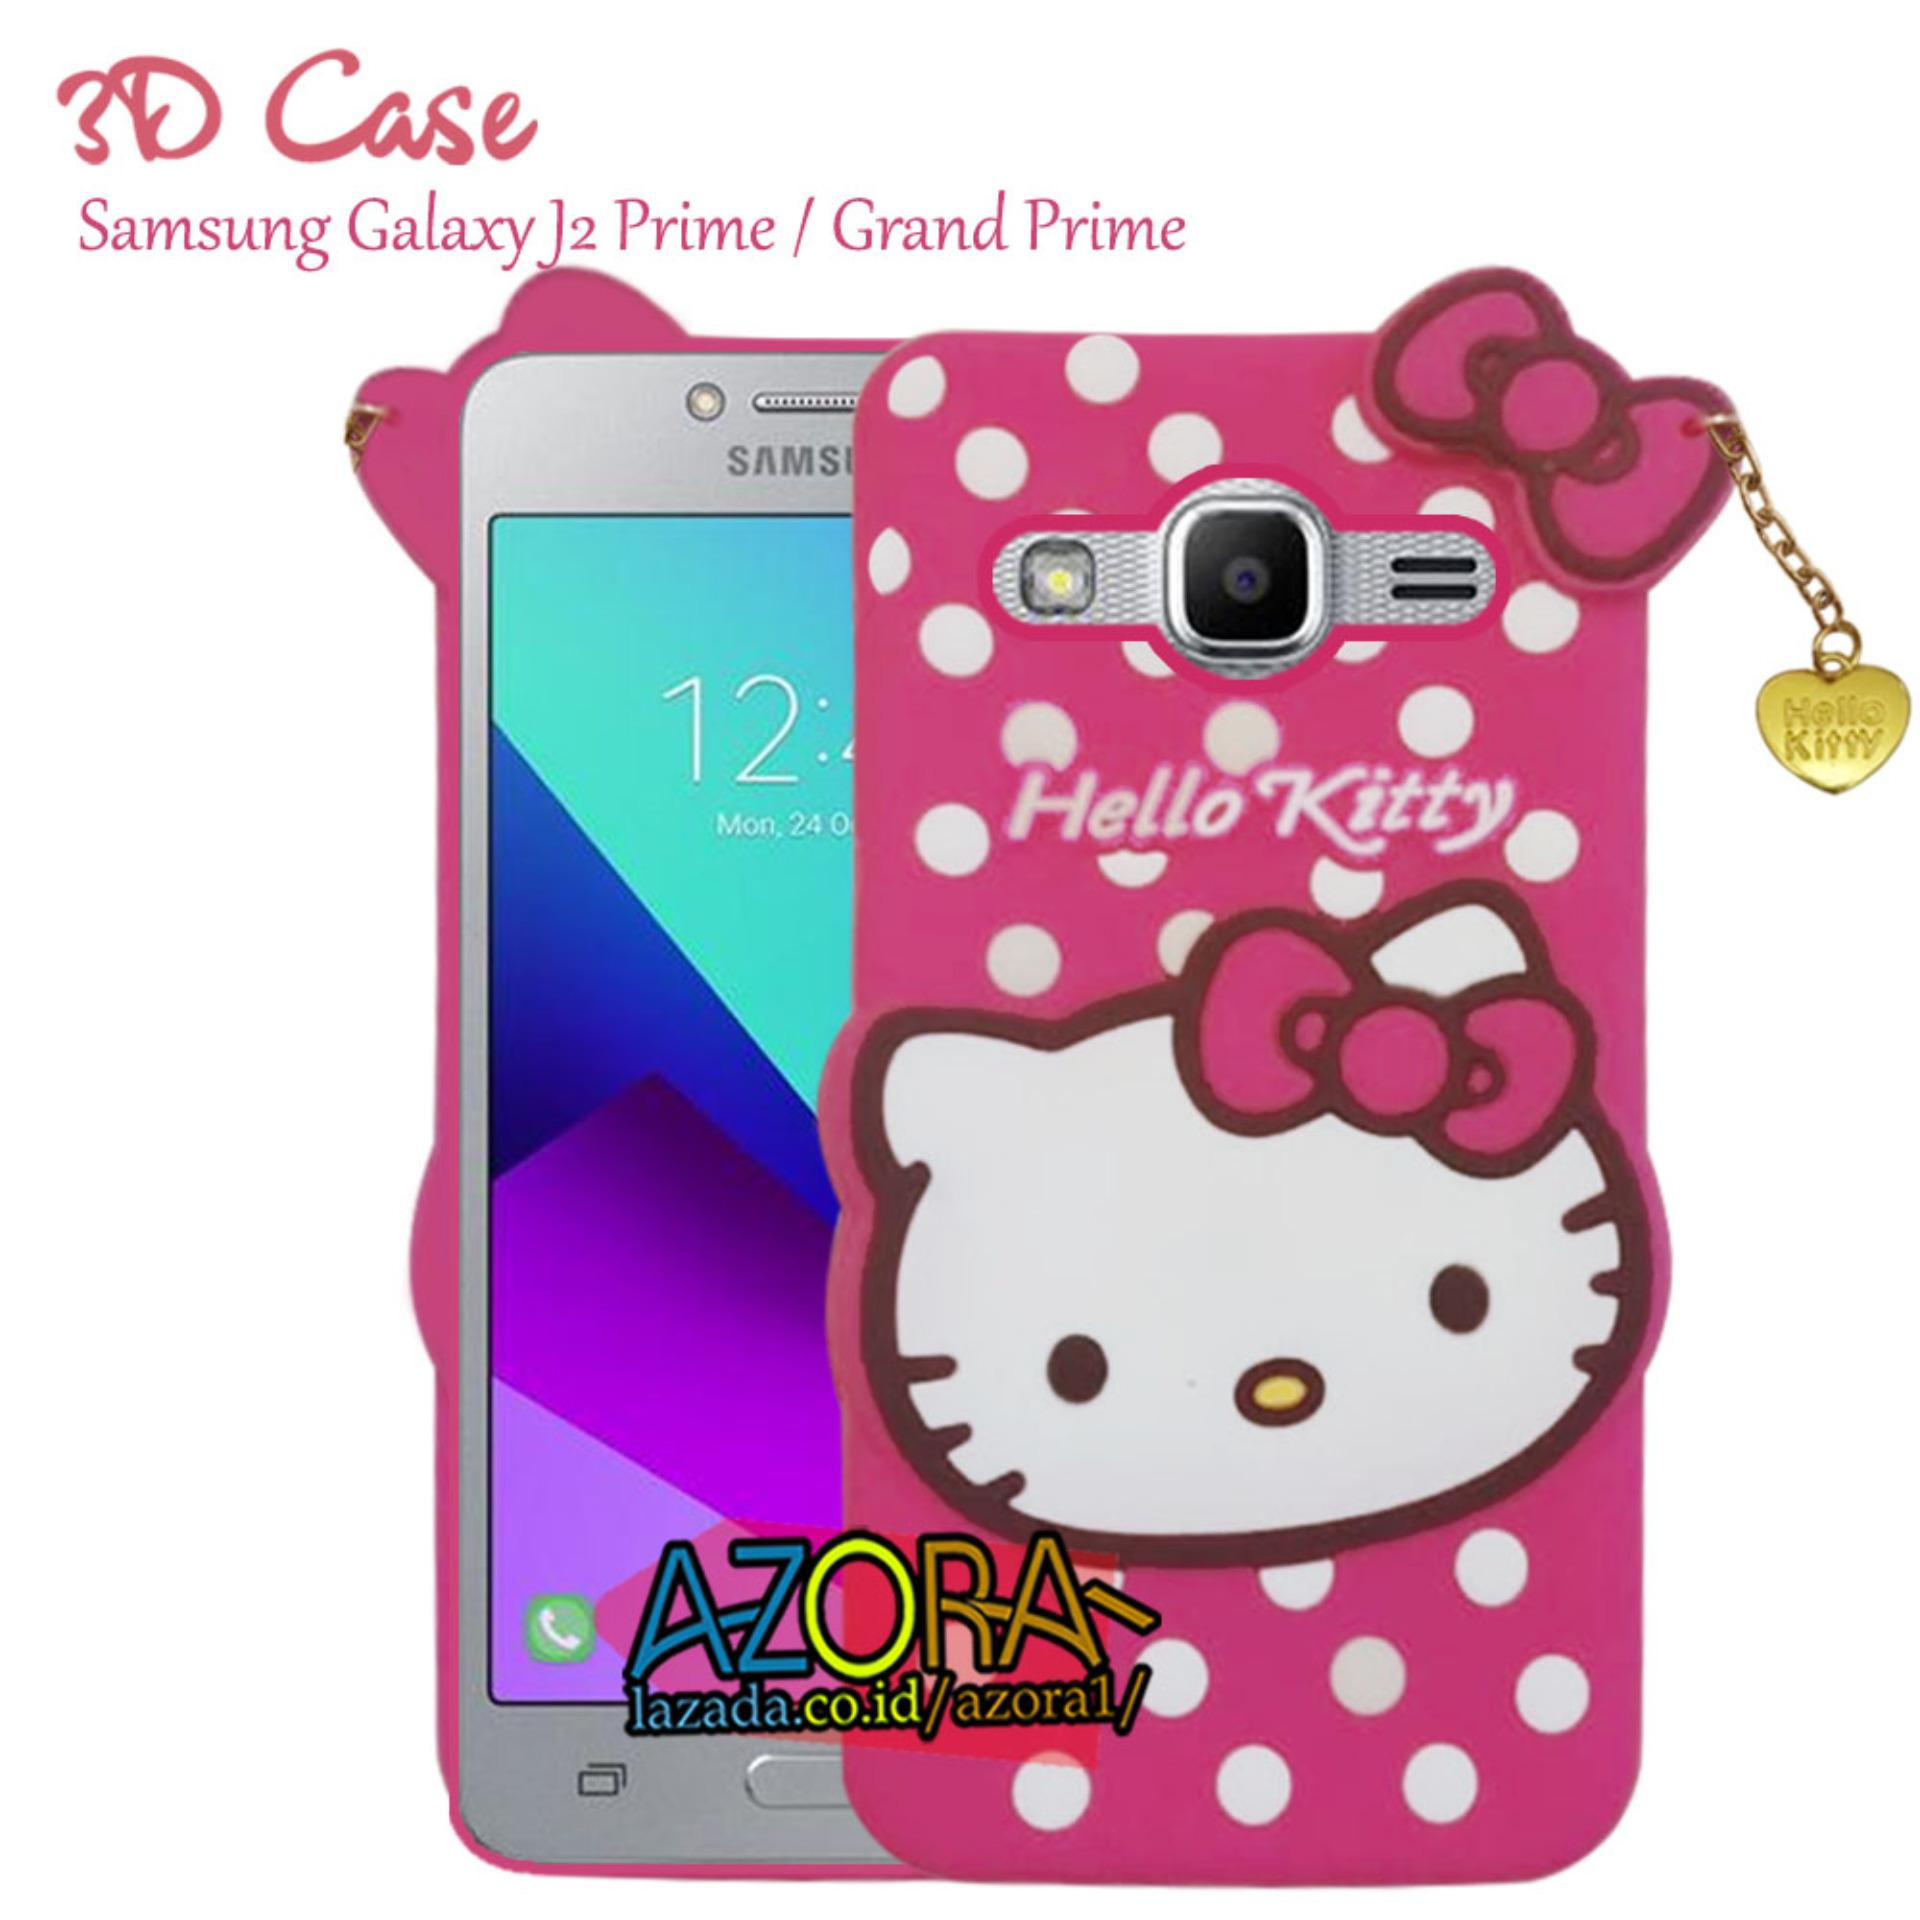 3D Case Samsung Galaxy J2 Prime / Grand Prime Softcase 4D Karakter Boneka Hello Kitty Doraemon Lucu Character Cartoon